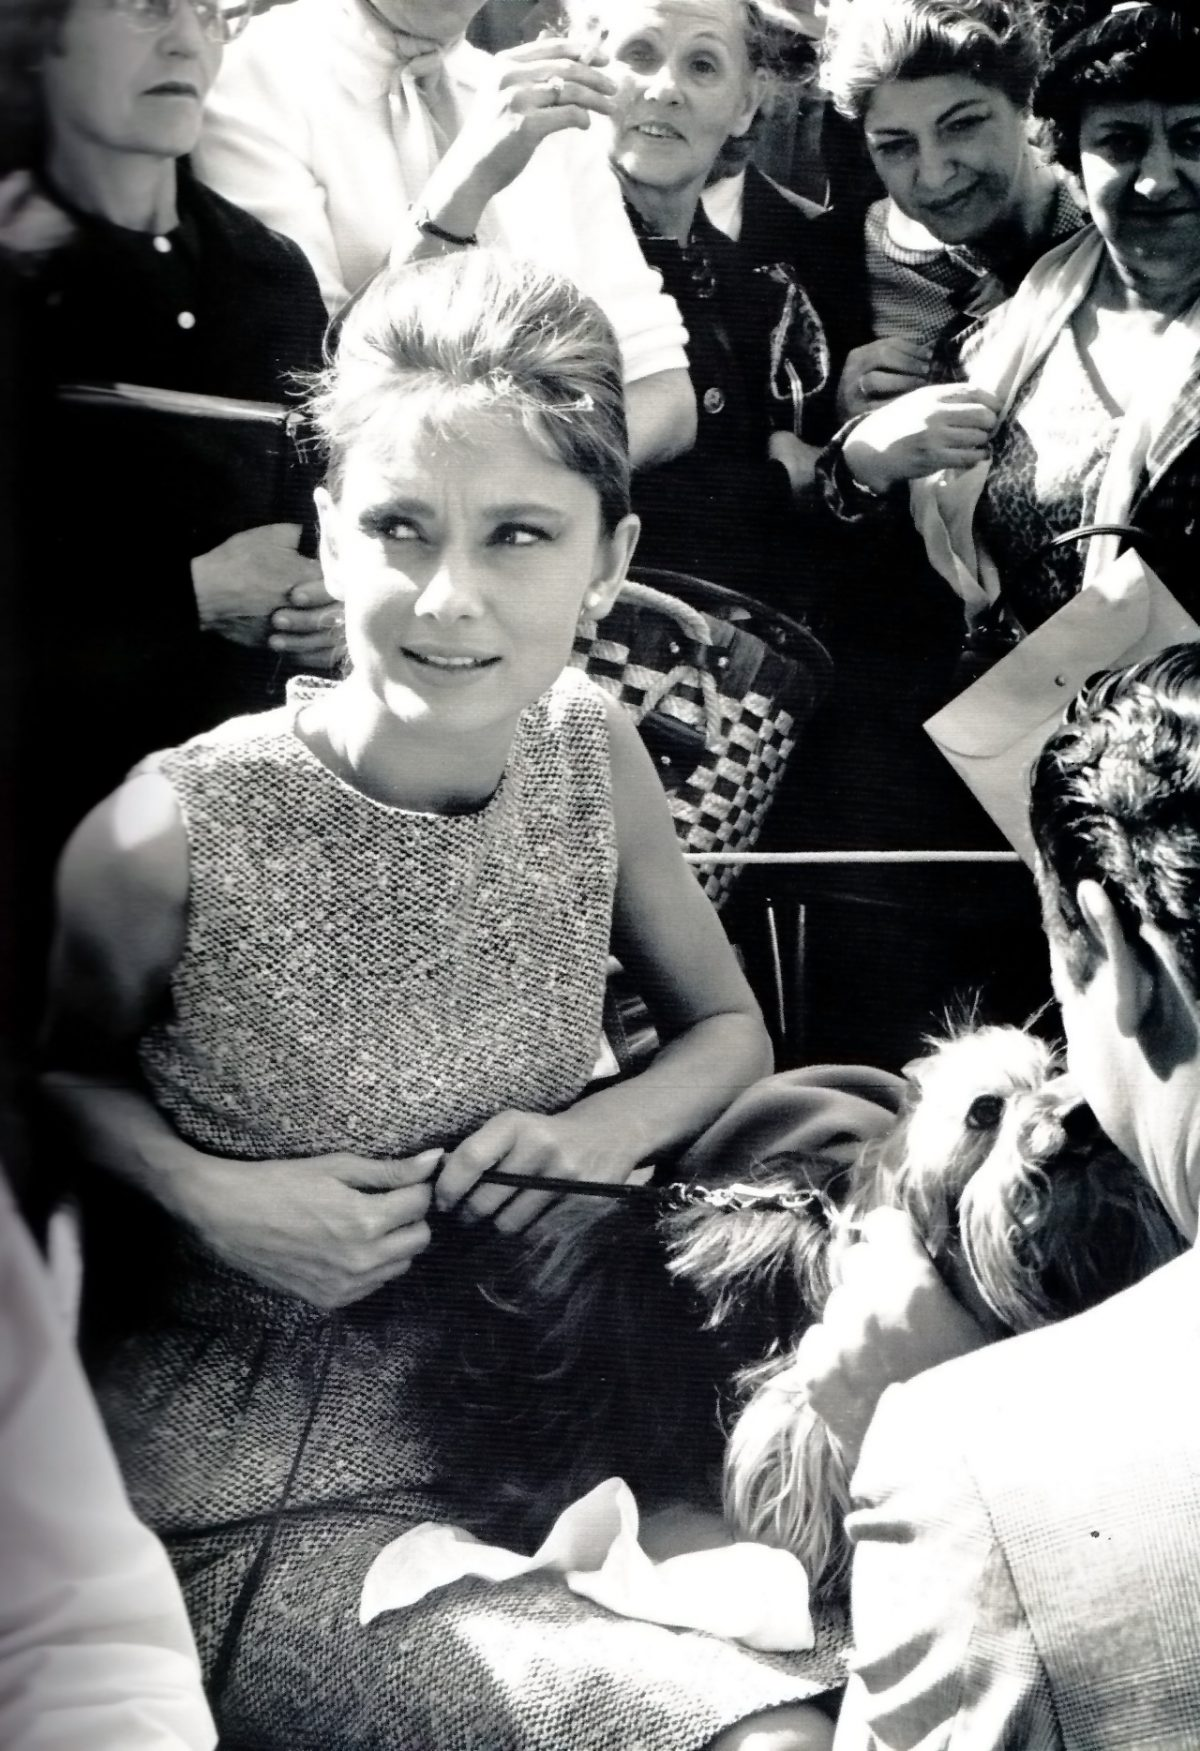 aa07f949b83 Audrey Hepburn on the set of Breakfast at Tiffany s directed by Blake  Edwards